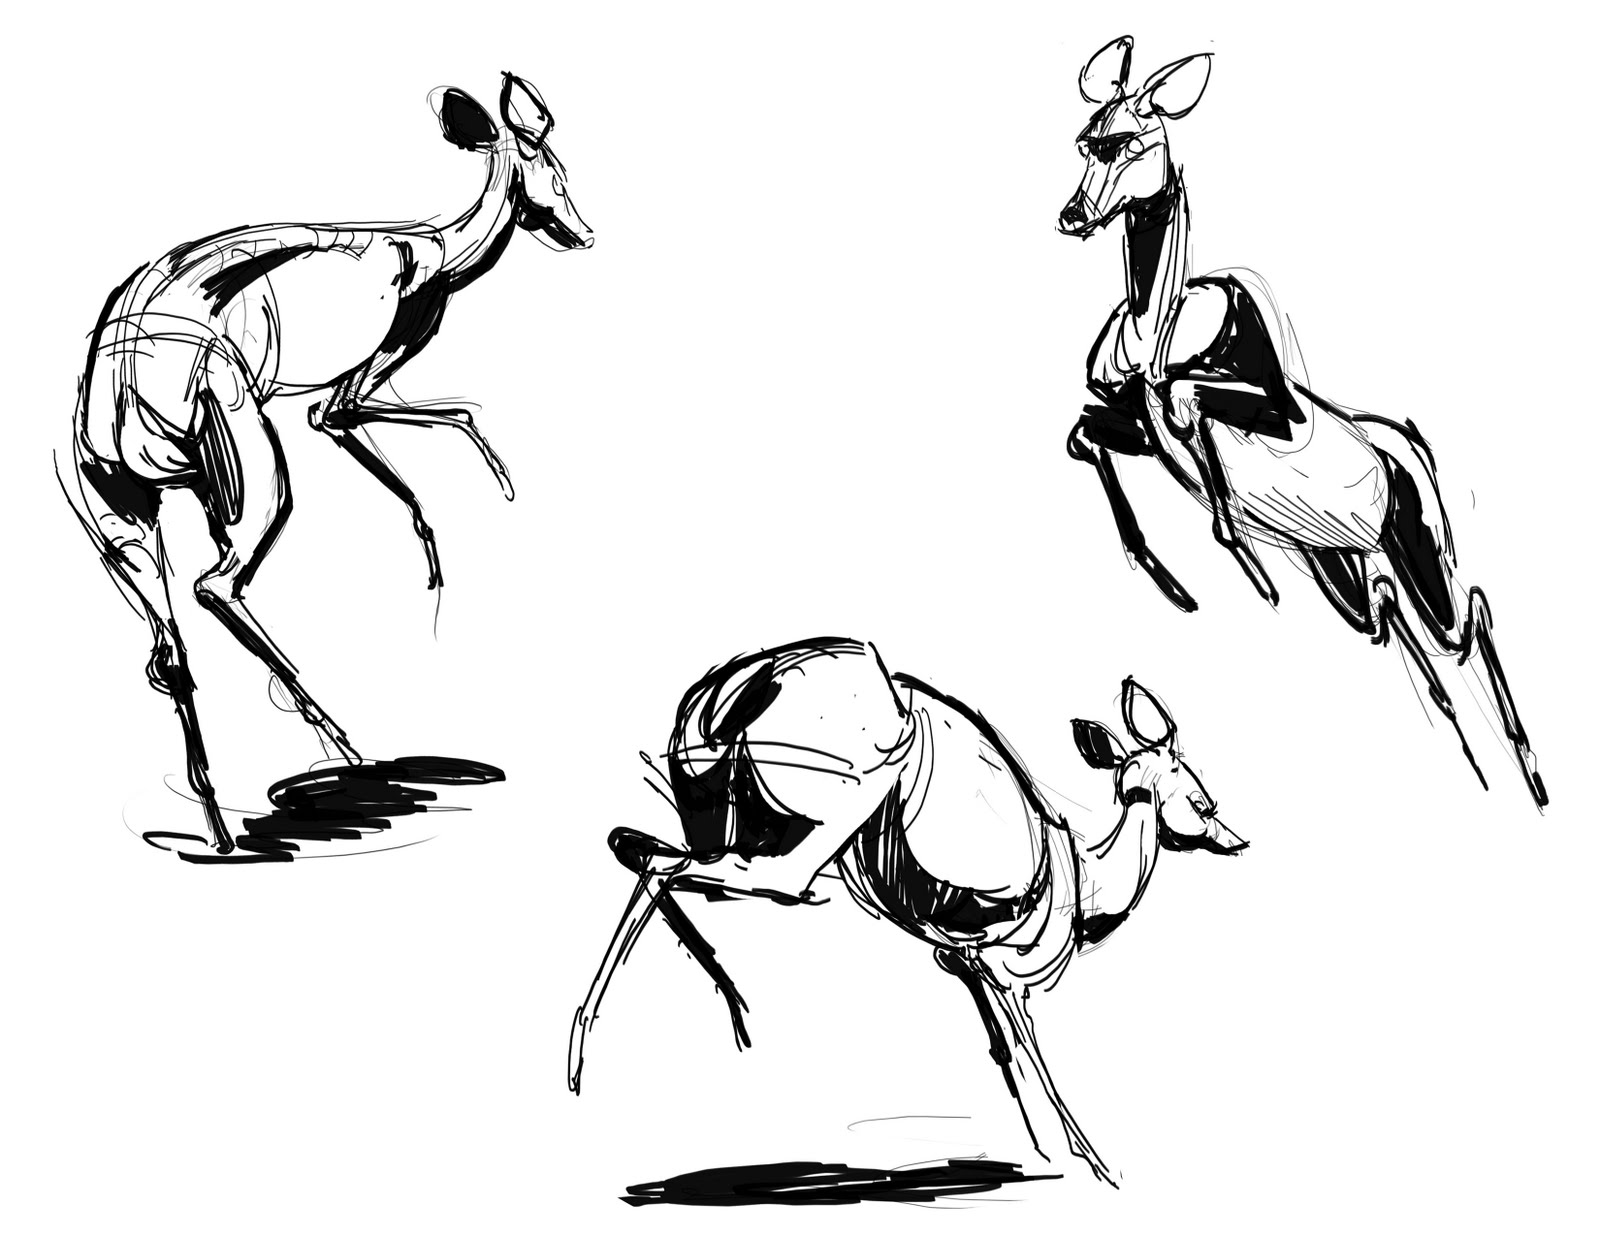 how to draw a deer how to draw a deer kid39s drawing ideas pinterest deer a how to draw